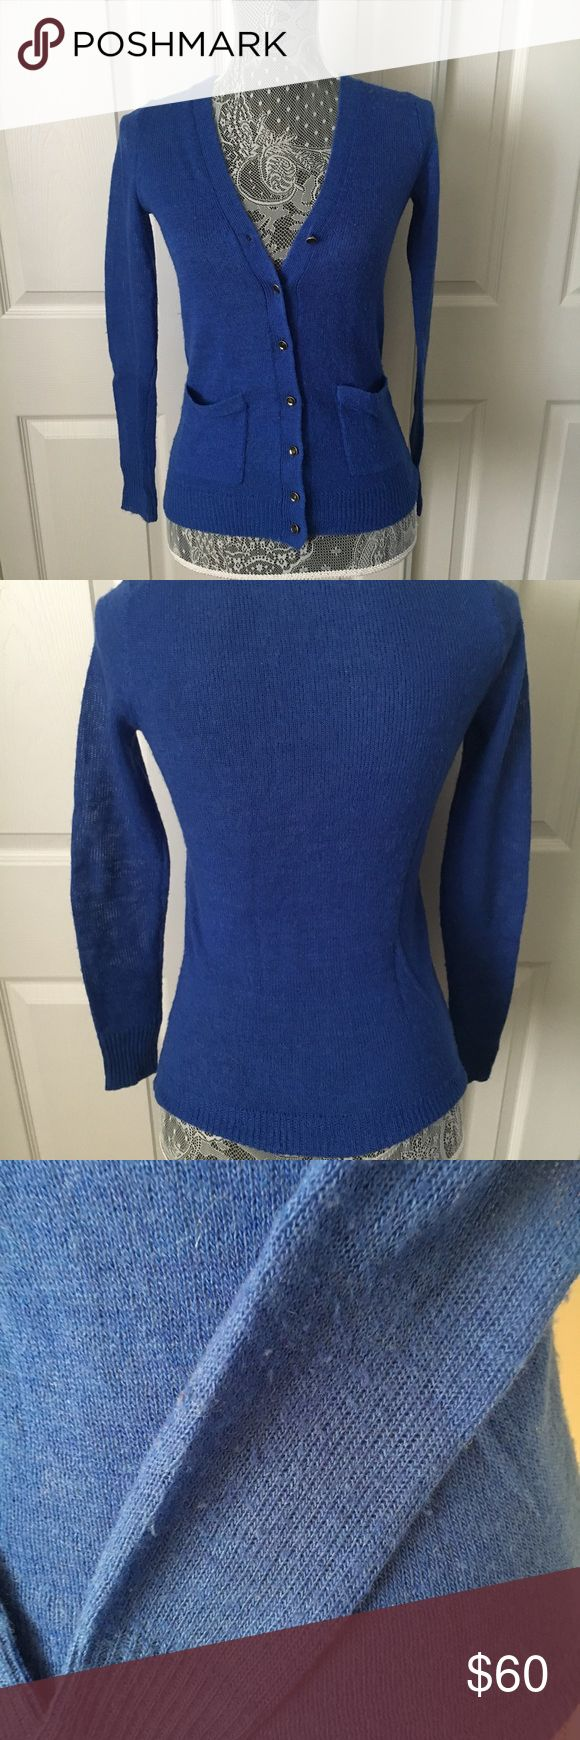 """JCrew Royal Blue alpaca blend cardigan Size XXS Has stretch to it, Measures approx 23"""" in length and 17"""" flat from armpit to armpit Waist is approx 14"""" flat Has some pilling throughout and 2 runs/pulls in the fabric on the left arm- please refer to last photos Overall very nice condition 45% acrylic 37% superfine alpaca 18% merino wool J Crew Sweaters Cardigans"""